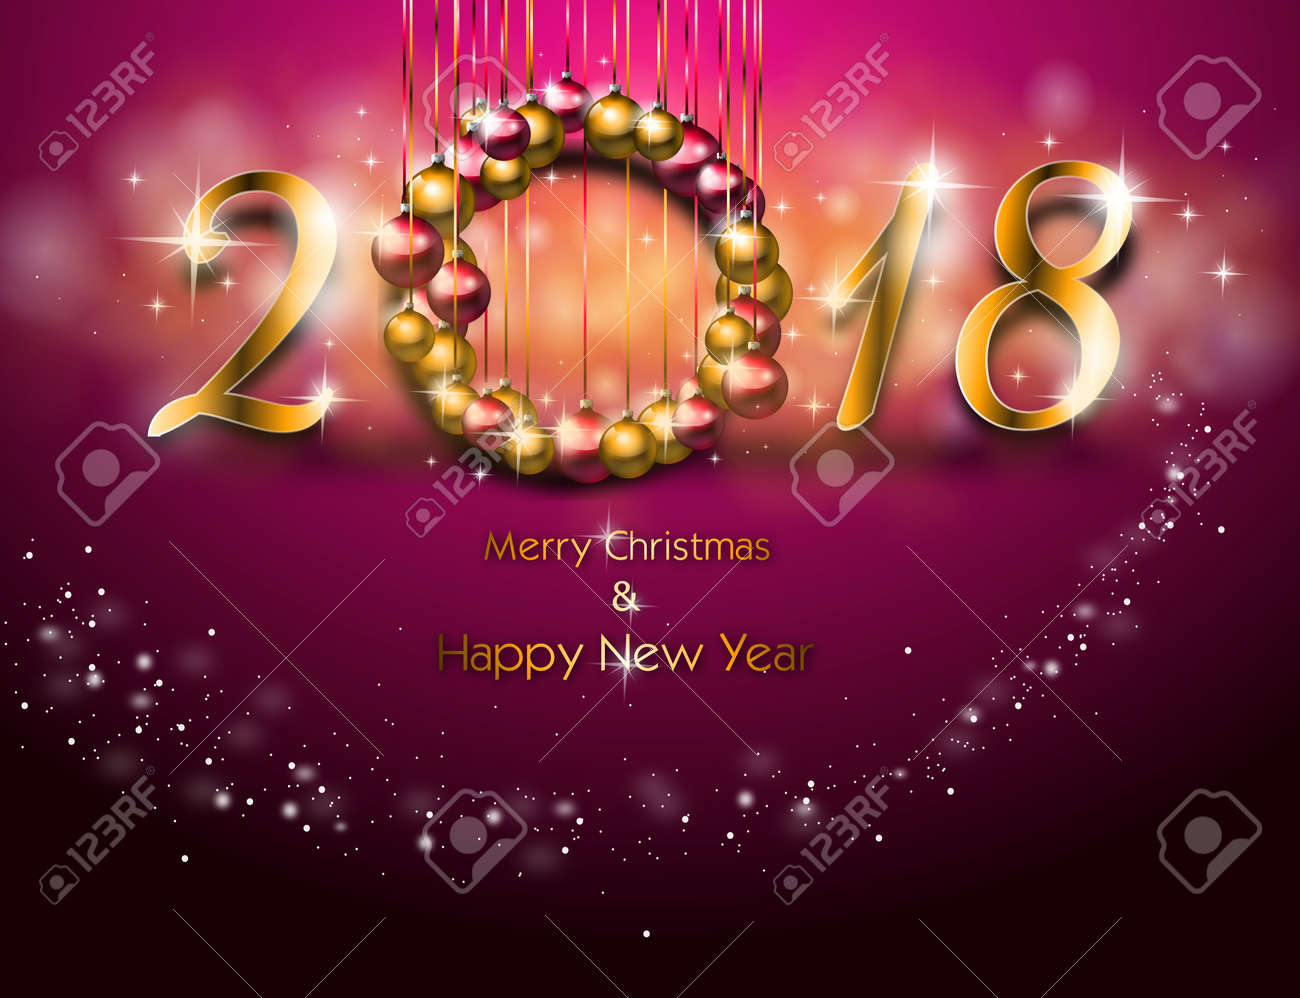 Illustration Of Happy New Year Greeting Card In Pink Color Stock ...